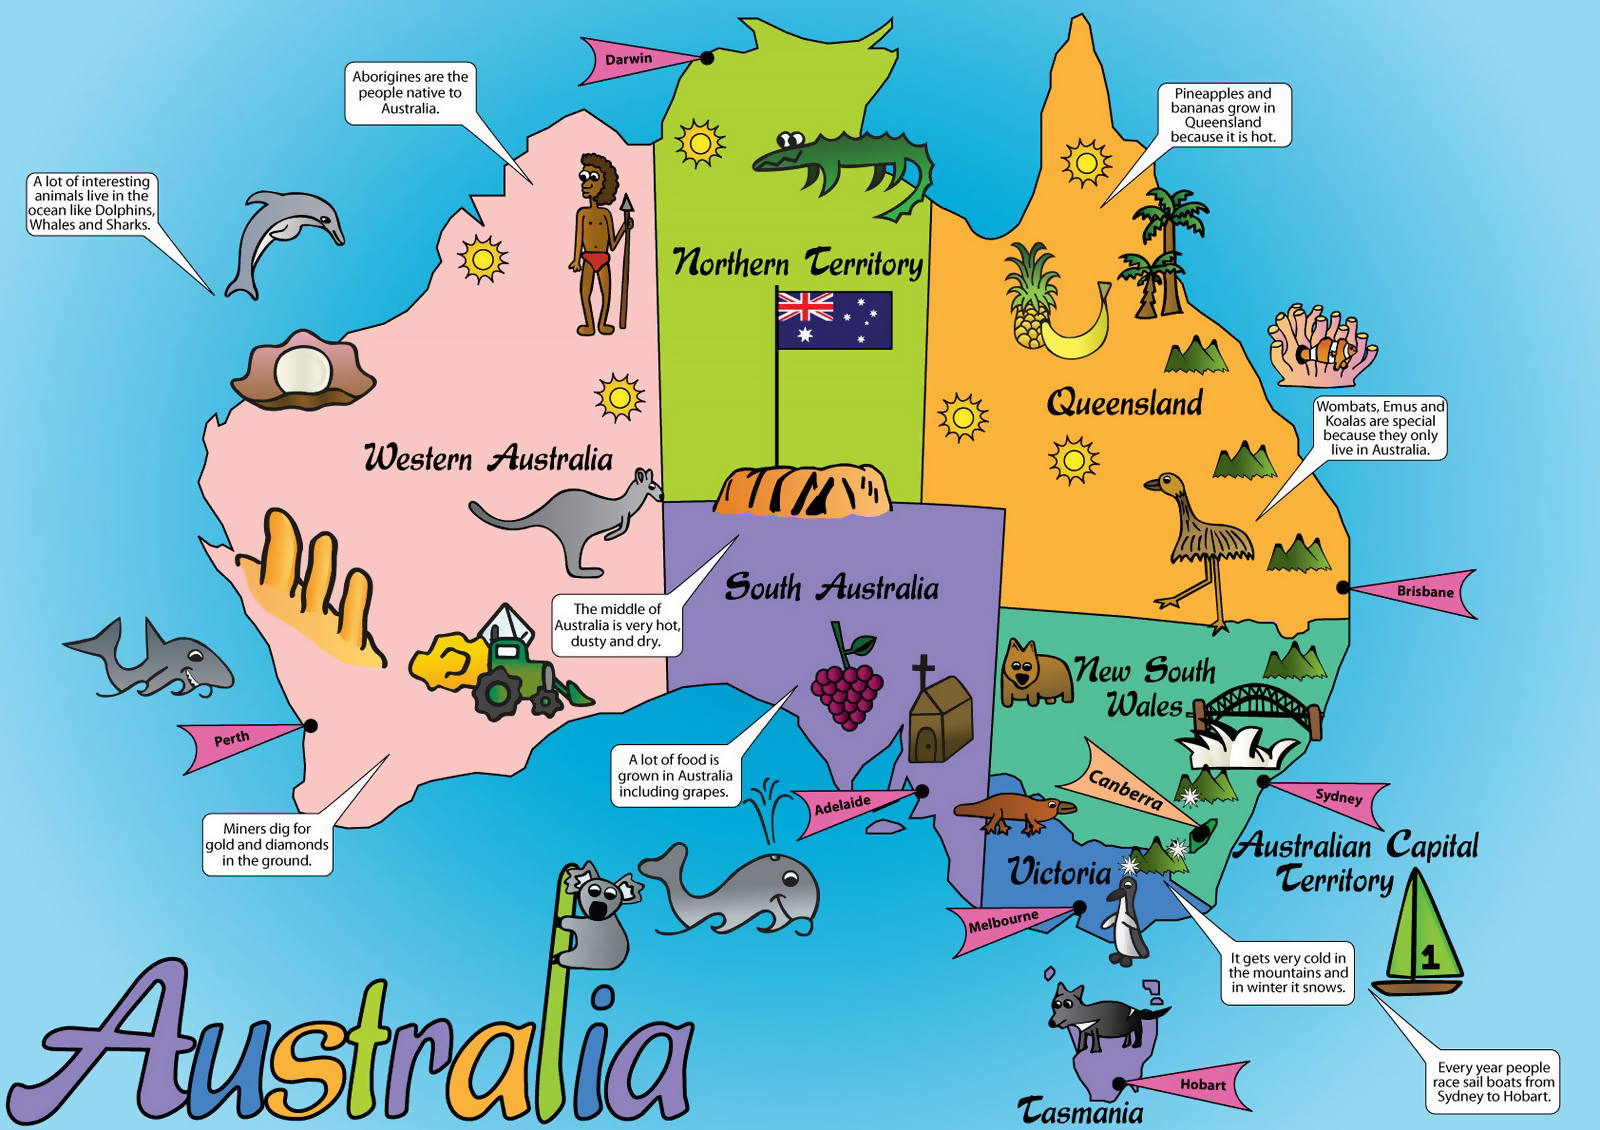 Large Australia cartoon map | Australia | Oceania | Mapsland ... on not to scale map, sci fi map, road map, political map, childrens map, countries flags map, simple map, french map, office map, car and map, cute map, tube map, game map, classroom map, me on the map, watercolor map, student with map, vintage map,